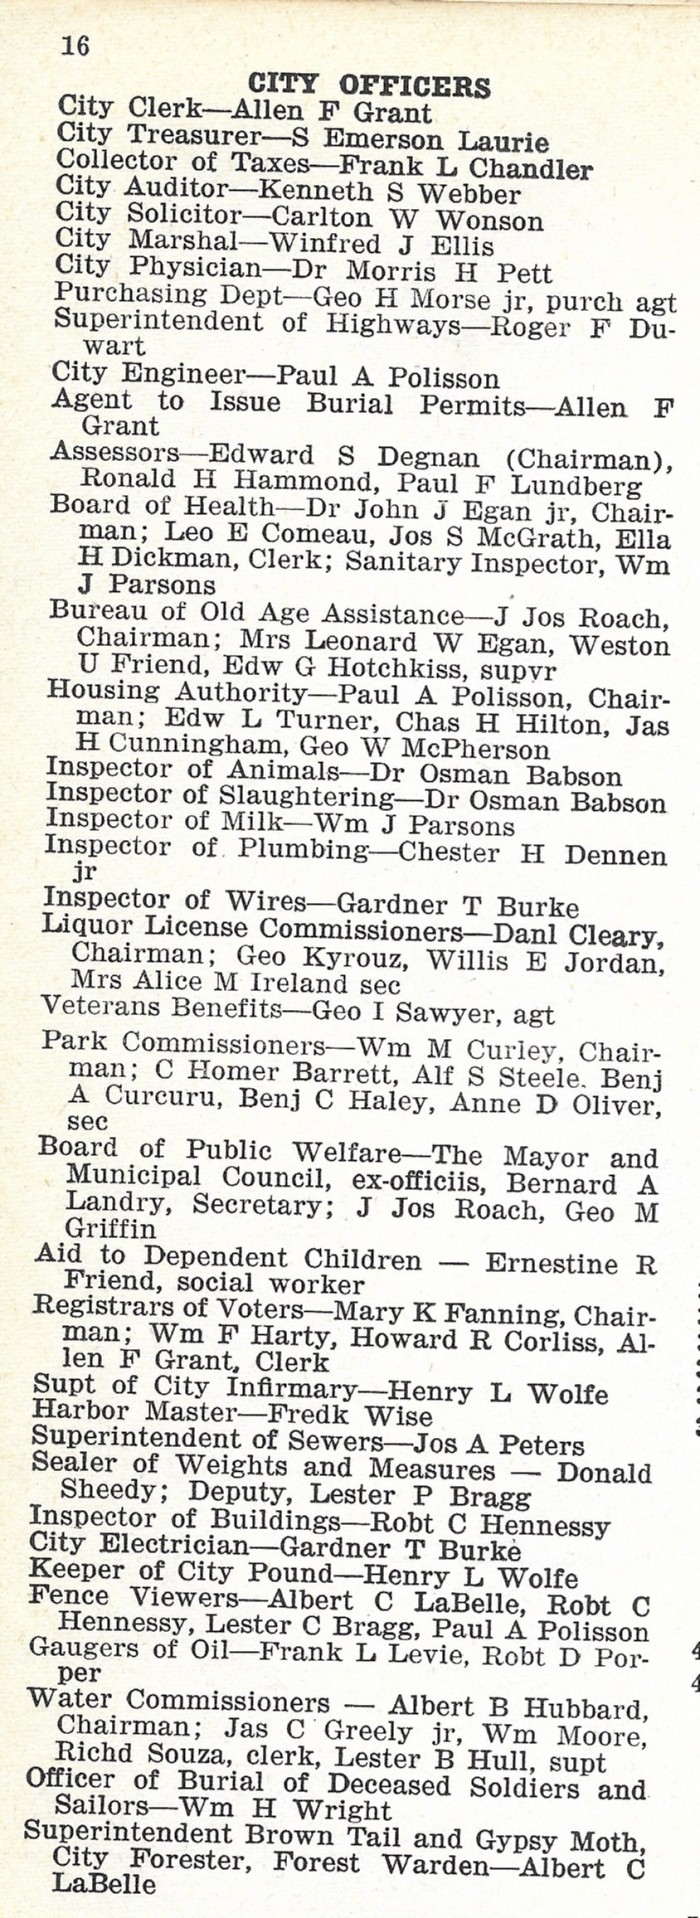 City Officers 1948 directory